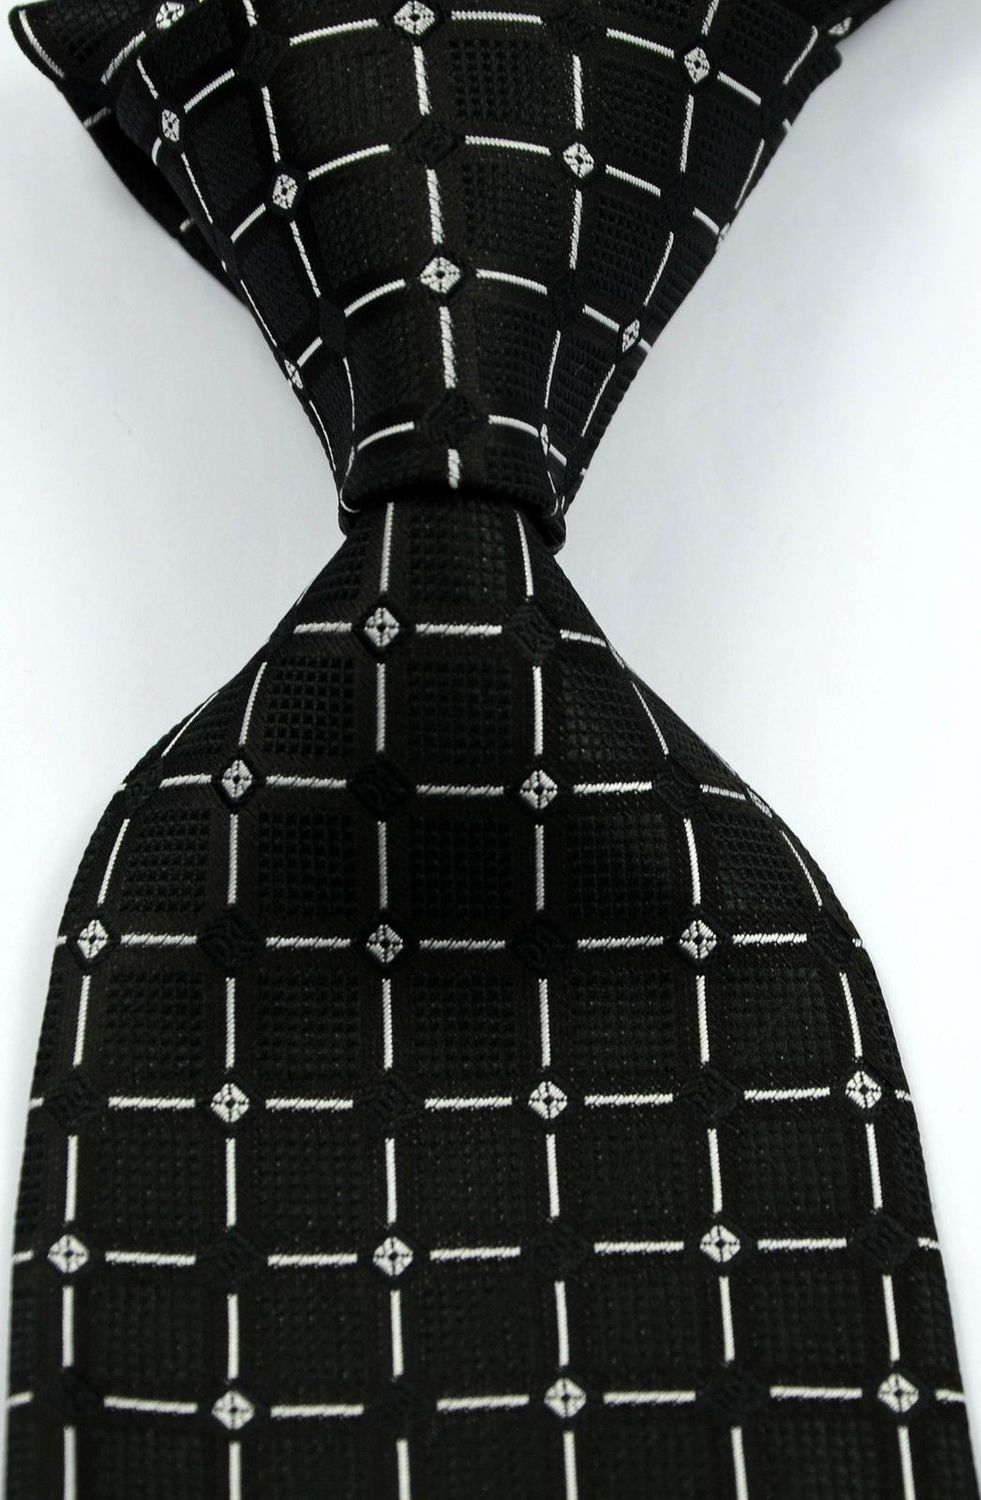 Classic Checks Striped Black JACQUARD WOVEN Silk Men's Tie Necktie #138 - wei669 store